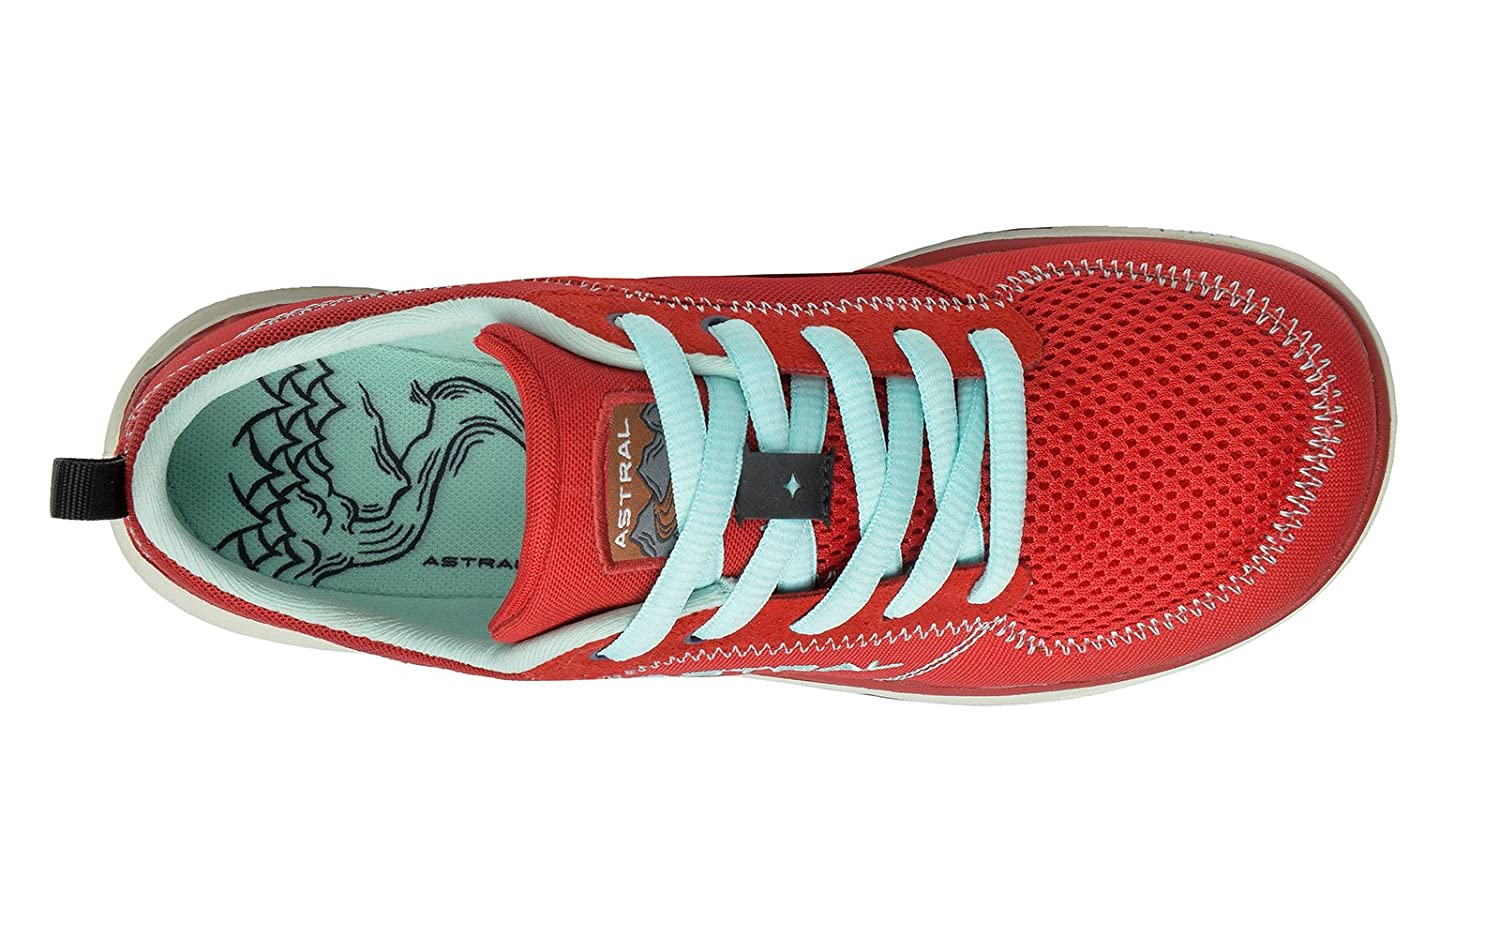 Astral Brewess 2.0 Women's Water Shoe B079C5TQWG 10.0 Rosa Red